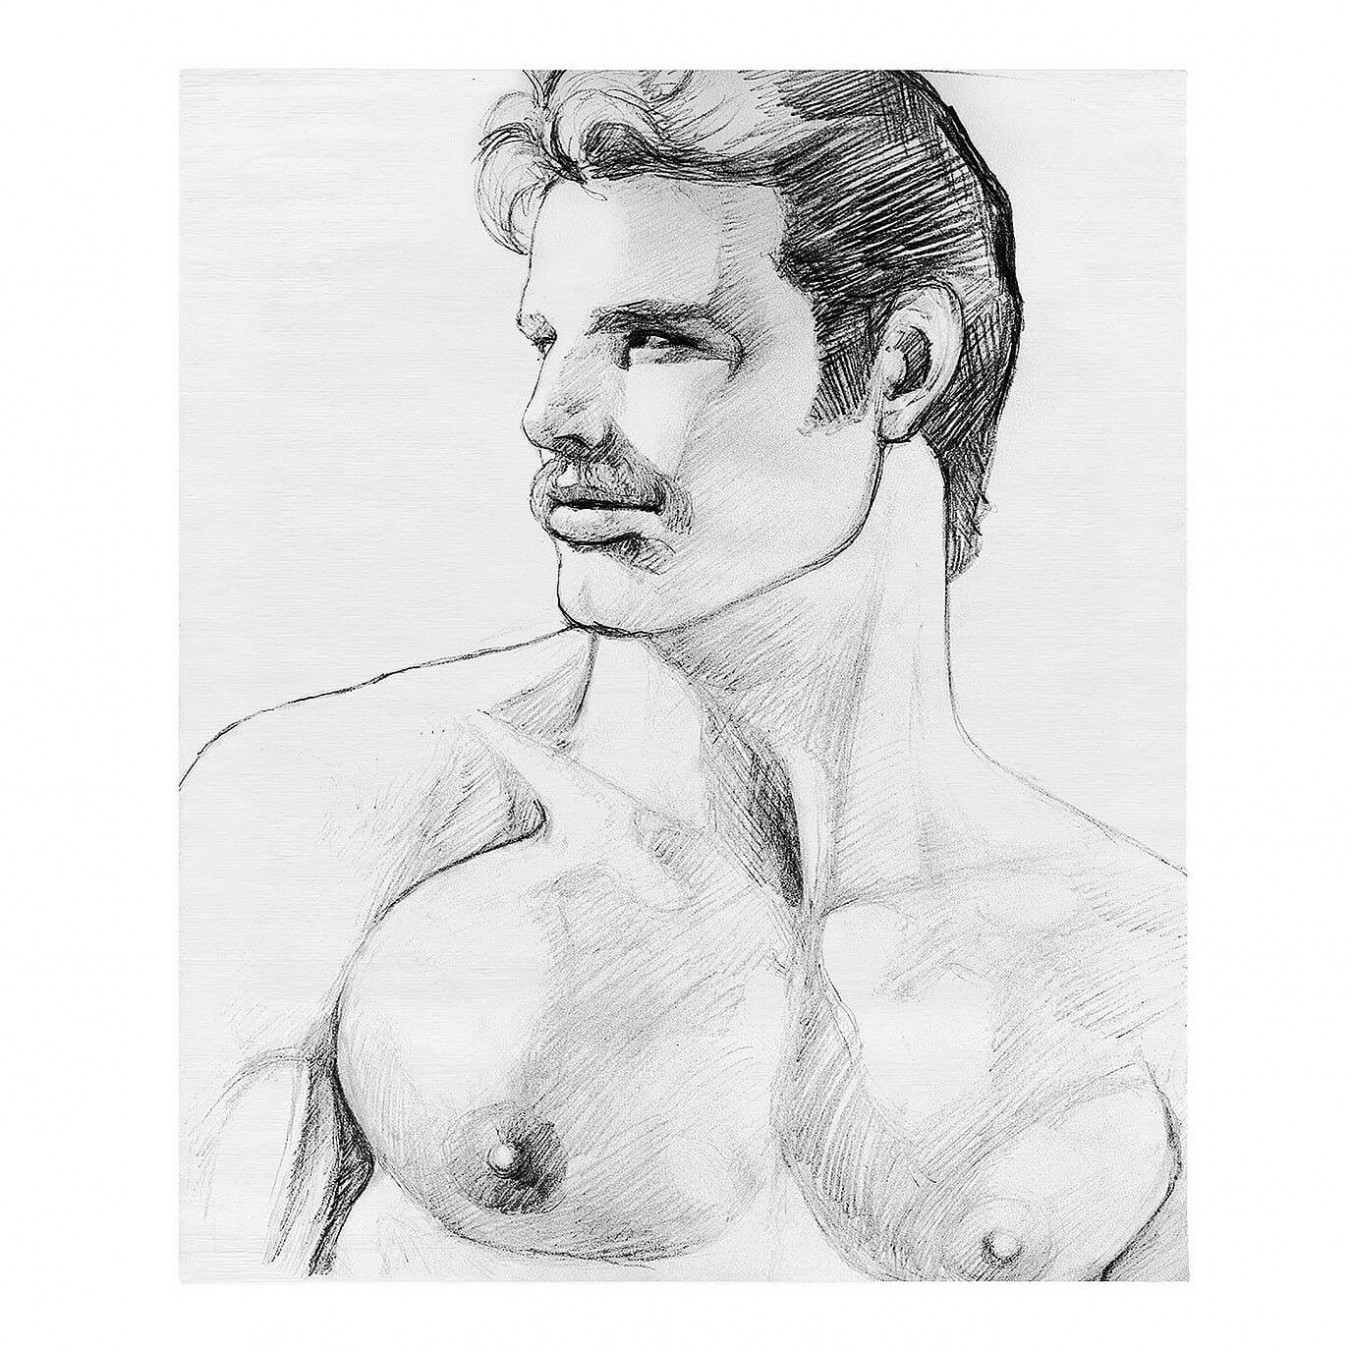 TOM OF FINLAND - Untitled, 1980